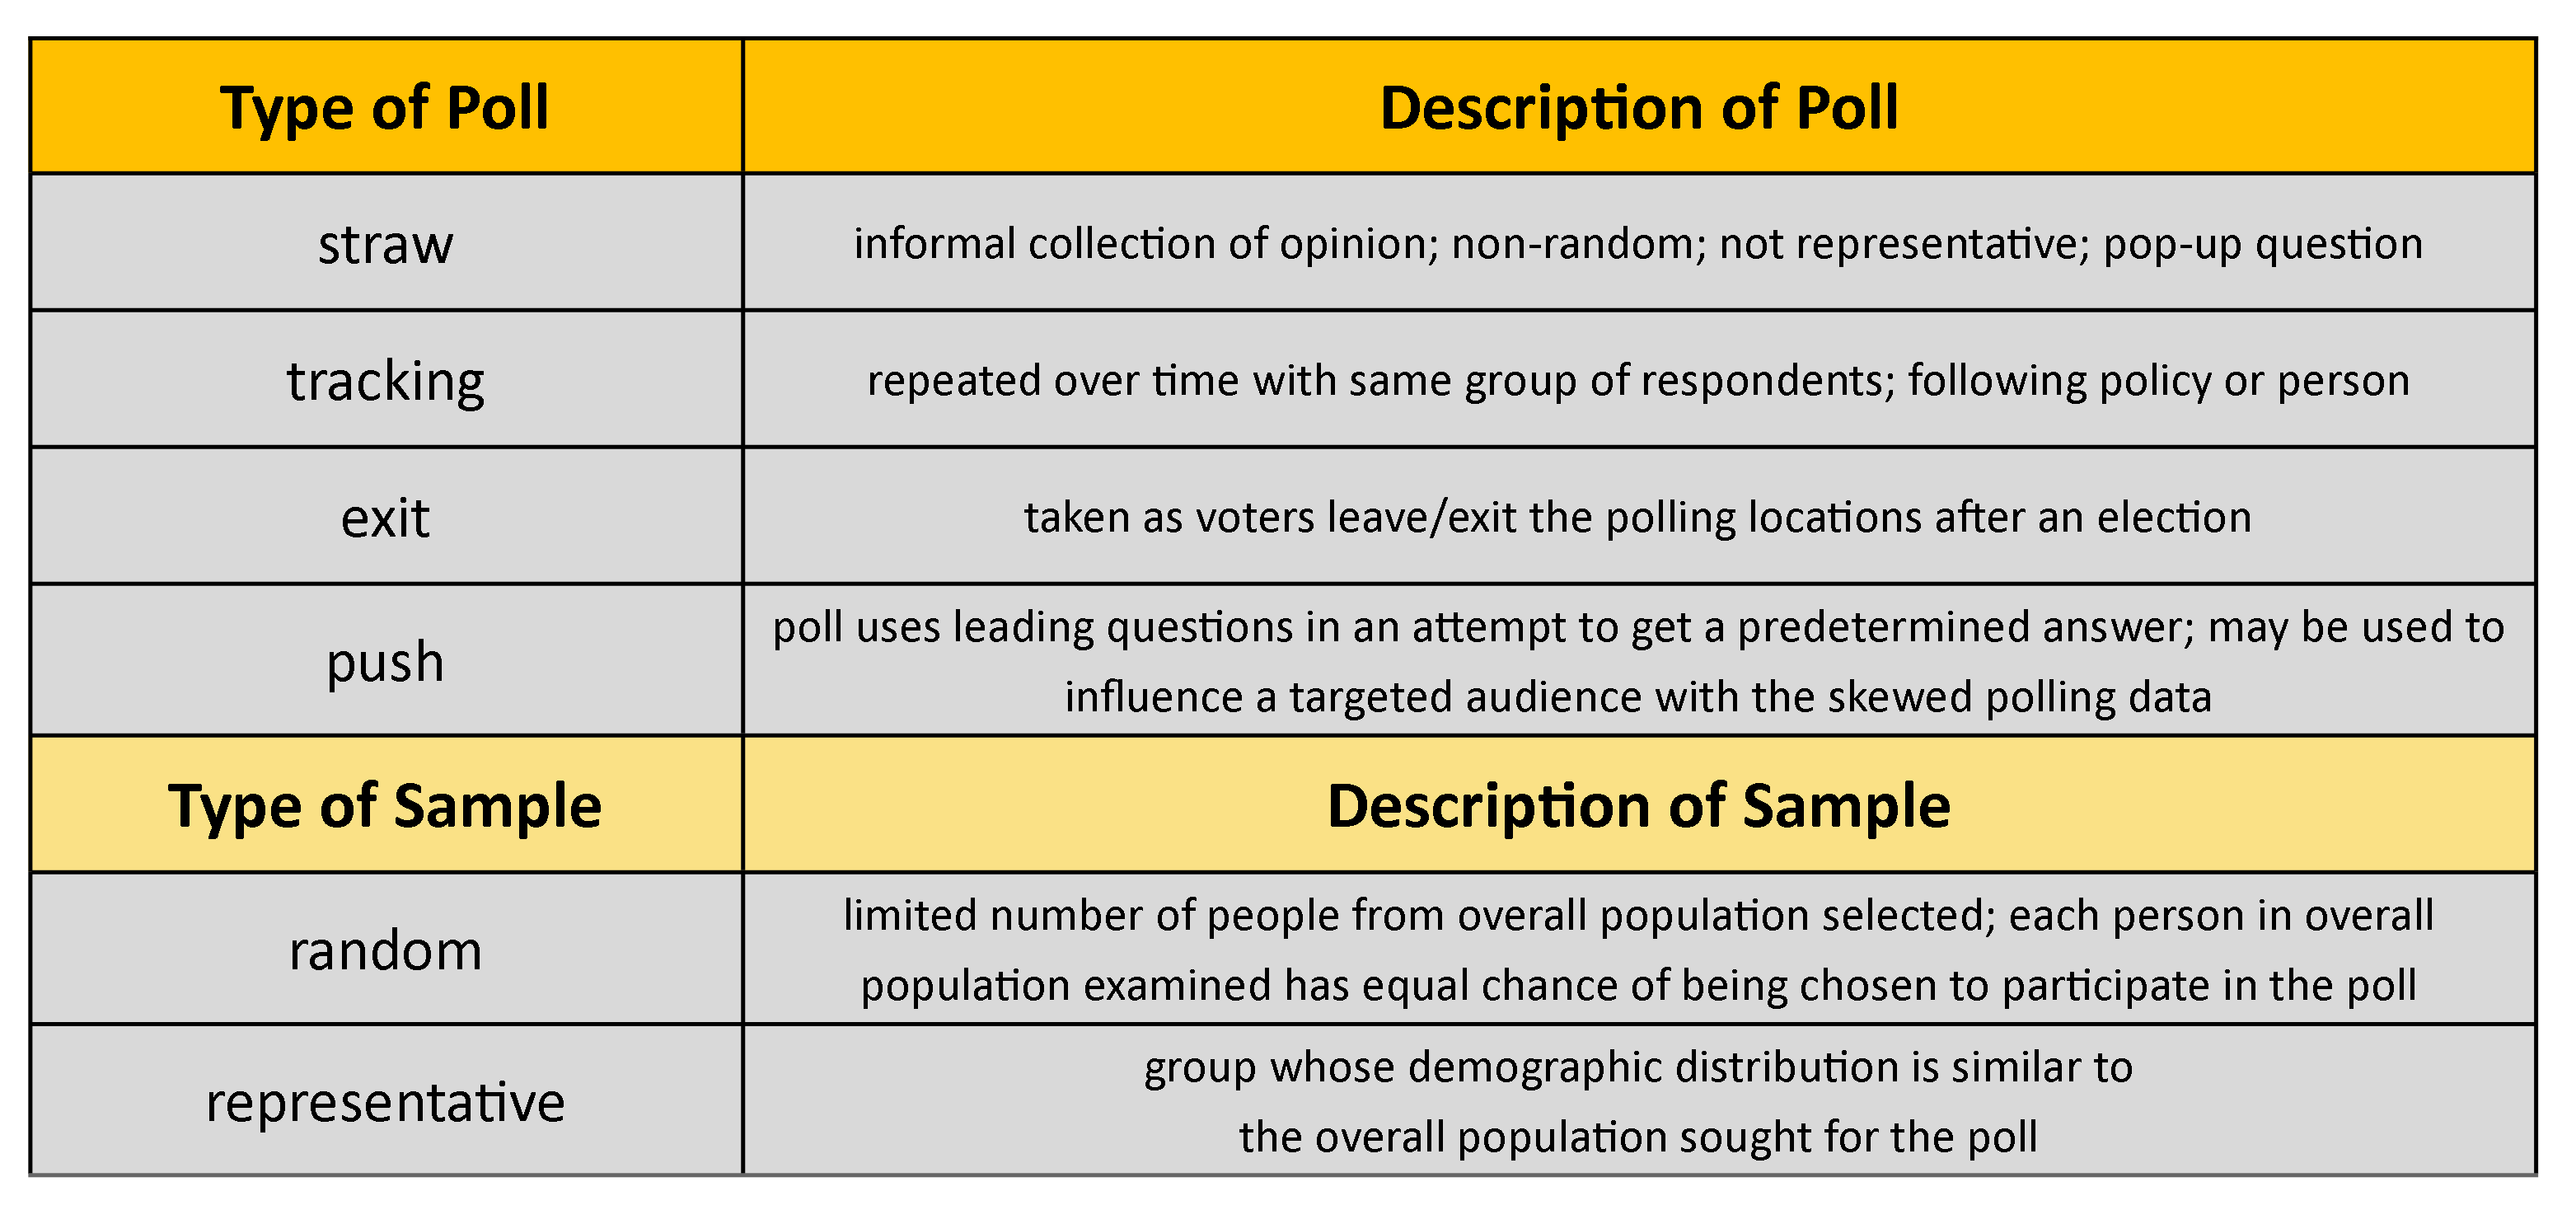 Chart of types of polls including straw, tracking, exit, and push; as well as, types of samples, including random and representative with descriptions. Same as listed in terms to remember.